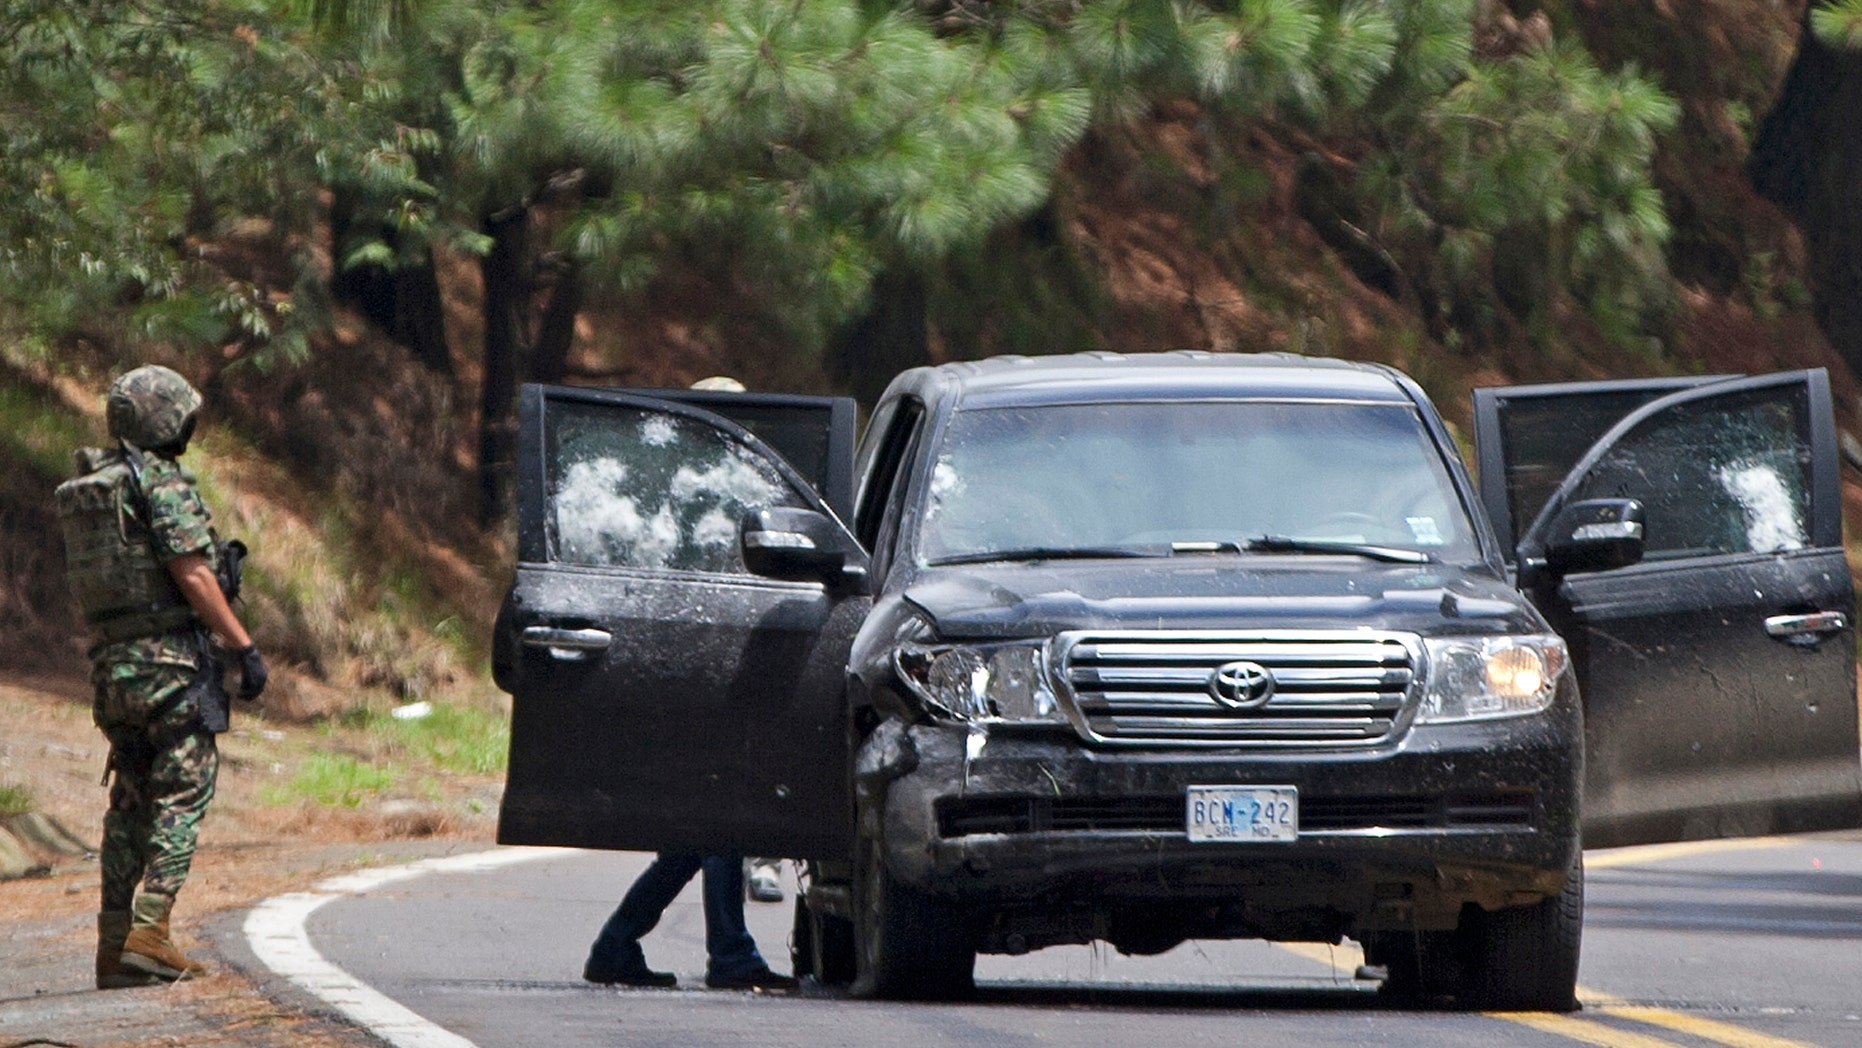 Aug. 24, 2012: An armored U.S. Embassy vehicle is checked by military personal after it was attacked by unknown assailants on the highway leading to the city of Cuernavaca, near Tres Marias, Mexico.